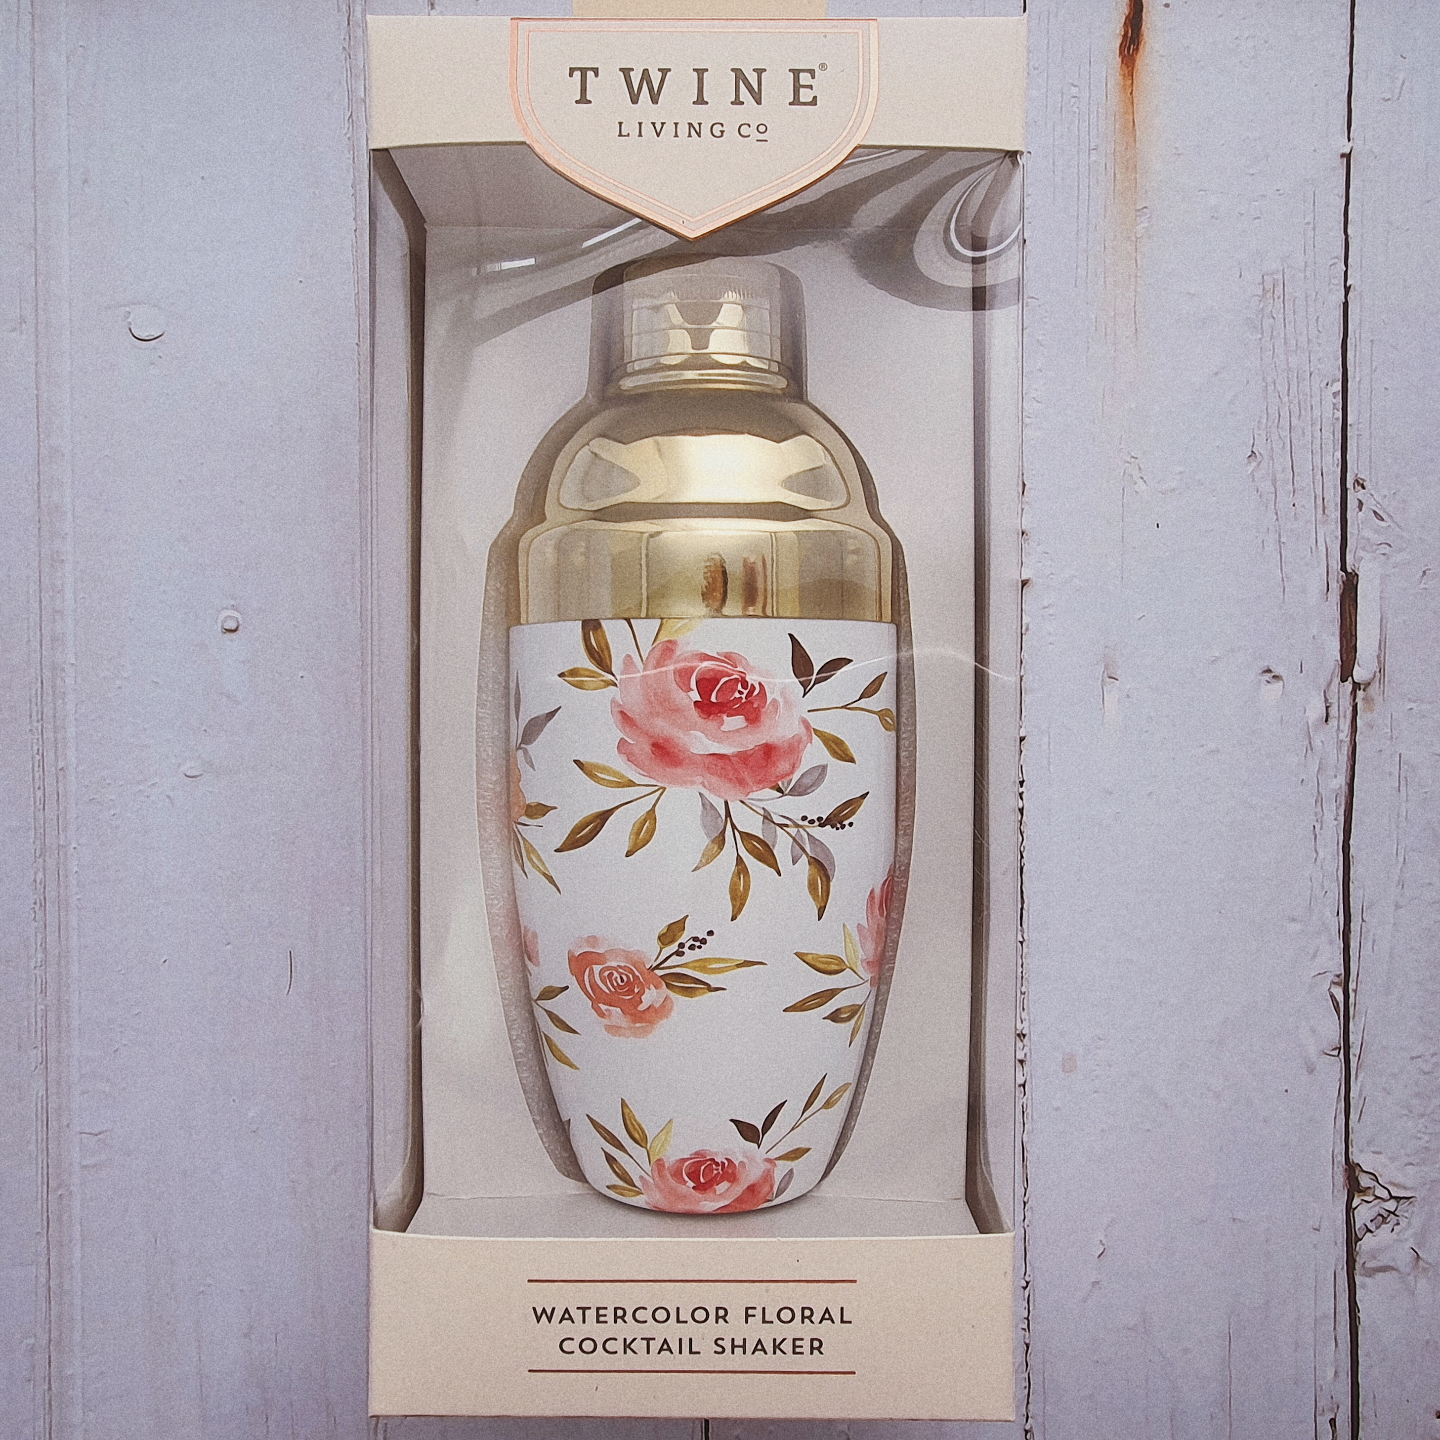 A gold cocktail shaker with watercolour floral prints on its body, packaged in a see through box.